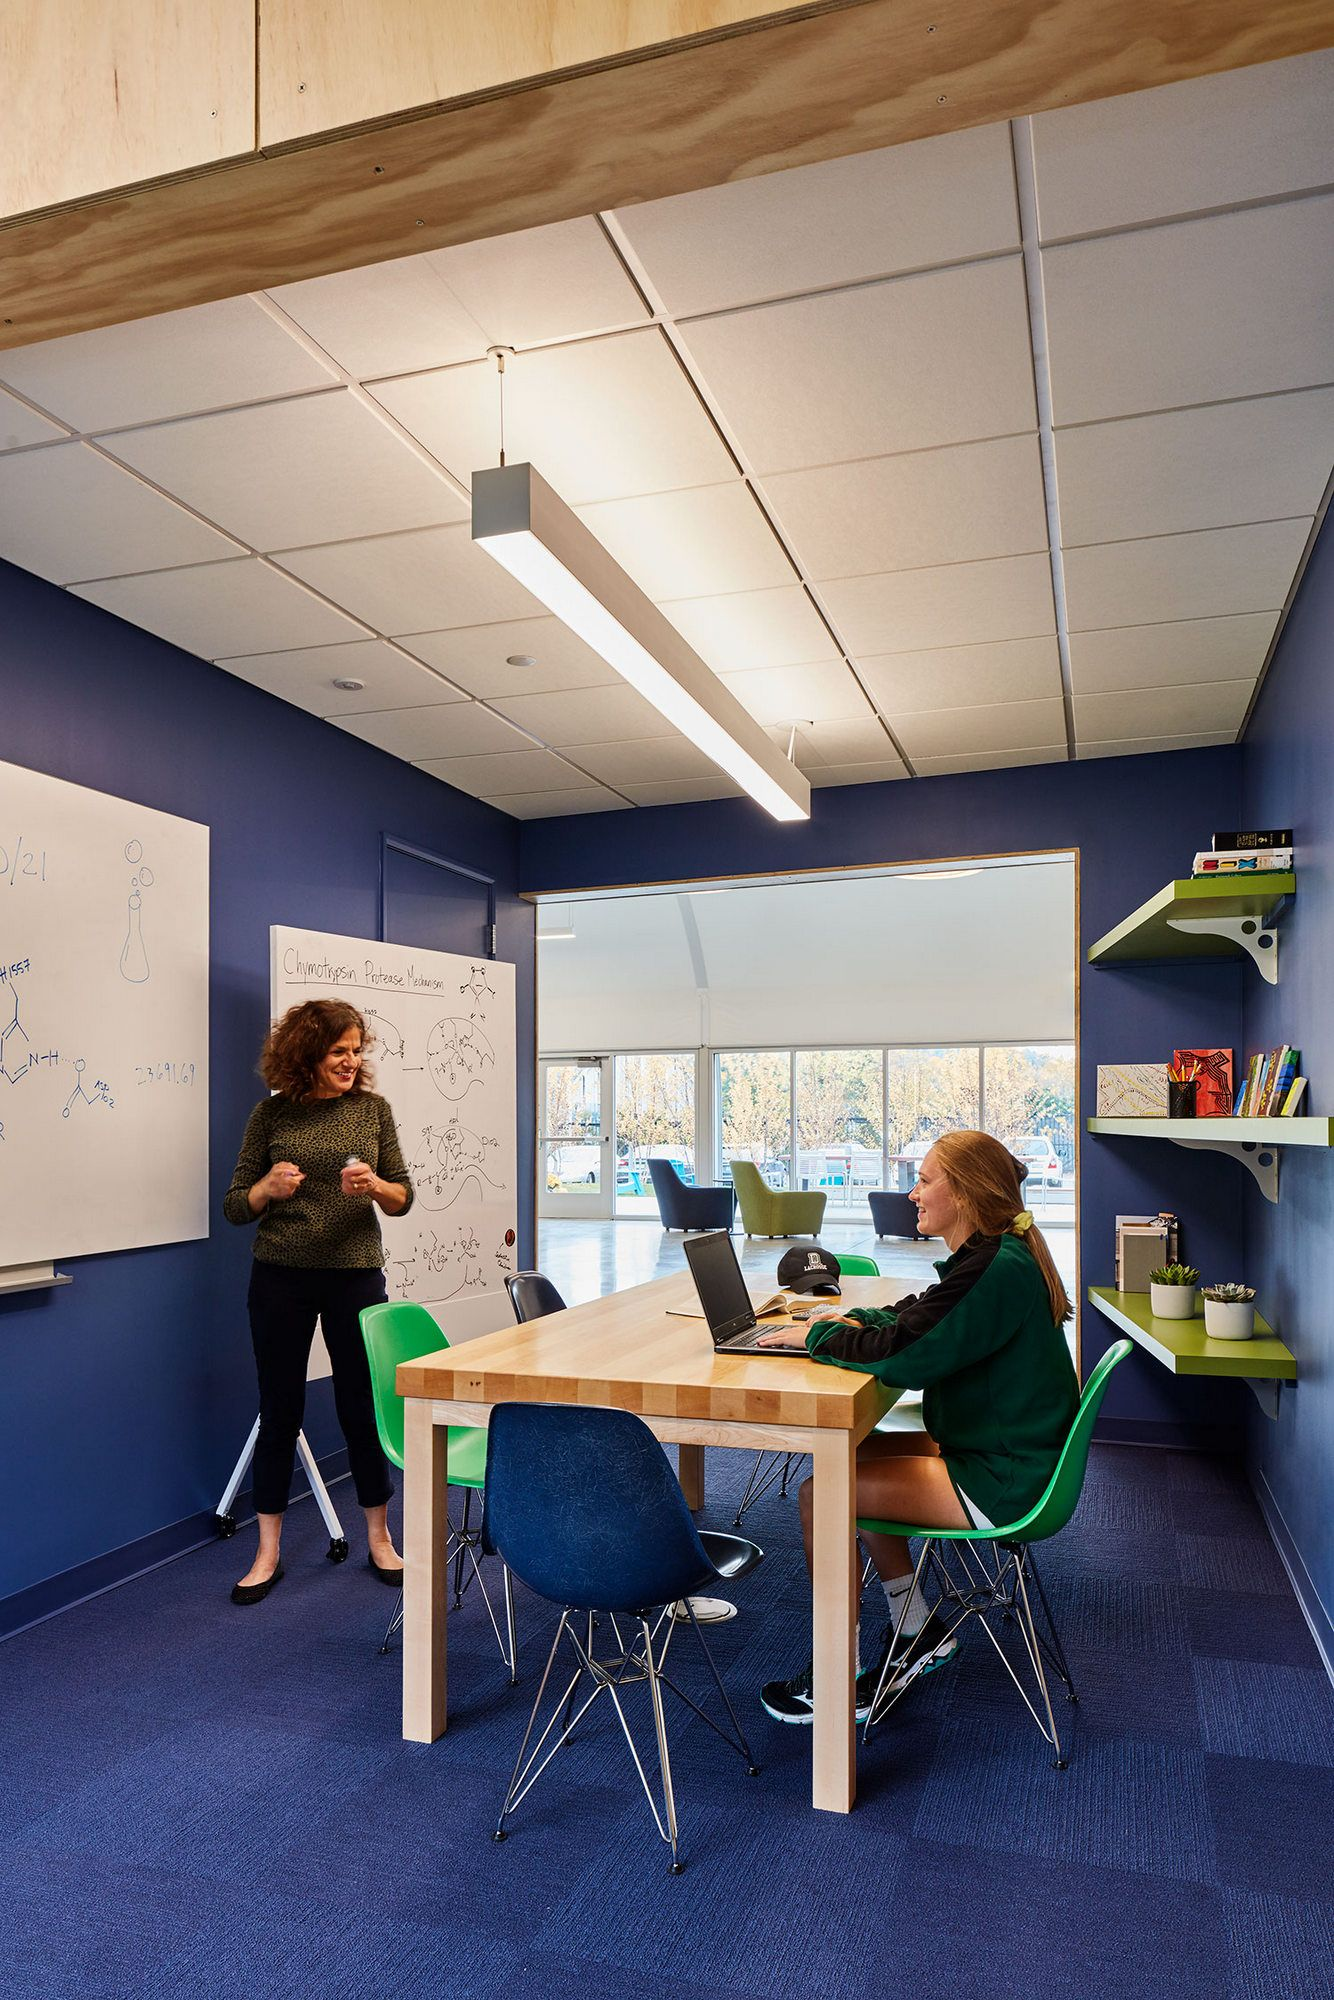 dartmouth college house center pilots 0 new building ideas in rh pinterest com